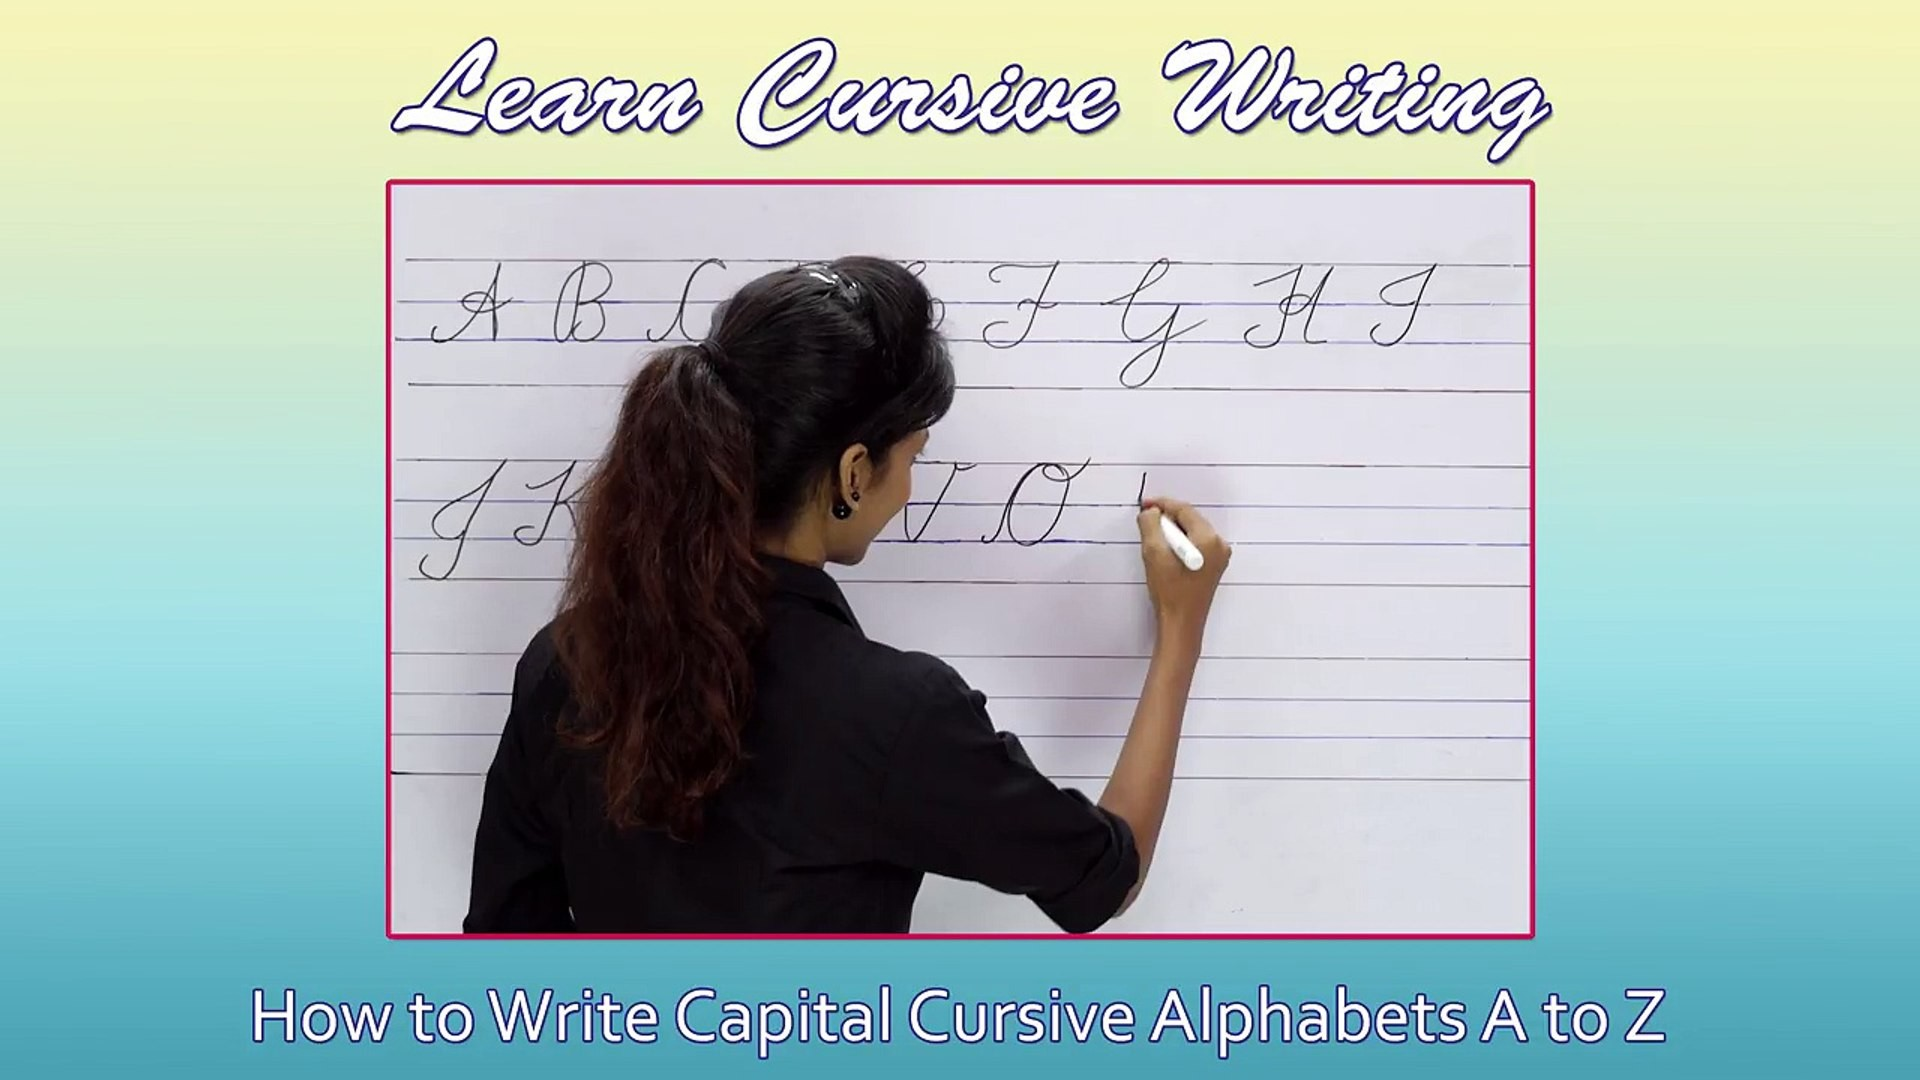 1920x1080 Cursive Writing For Beginners | Writing Cursive Alphabets : Capital | Cursive  Handwriting Price - video dailymotion